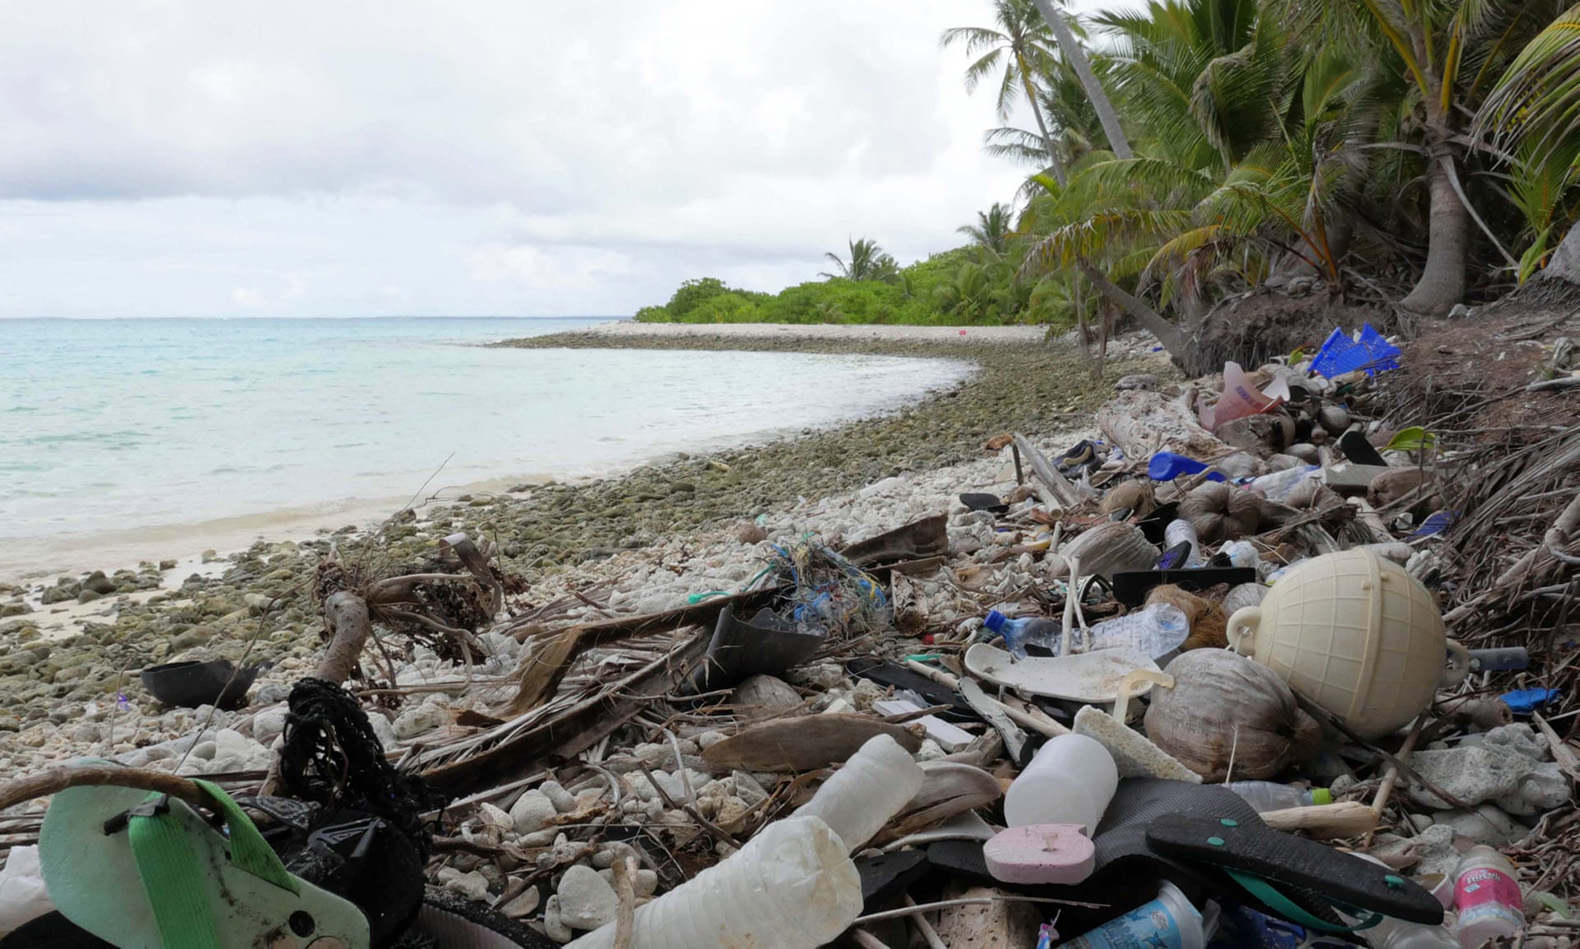 Even the most remote islands are victims of plastic pollution